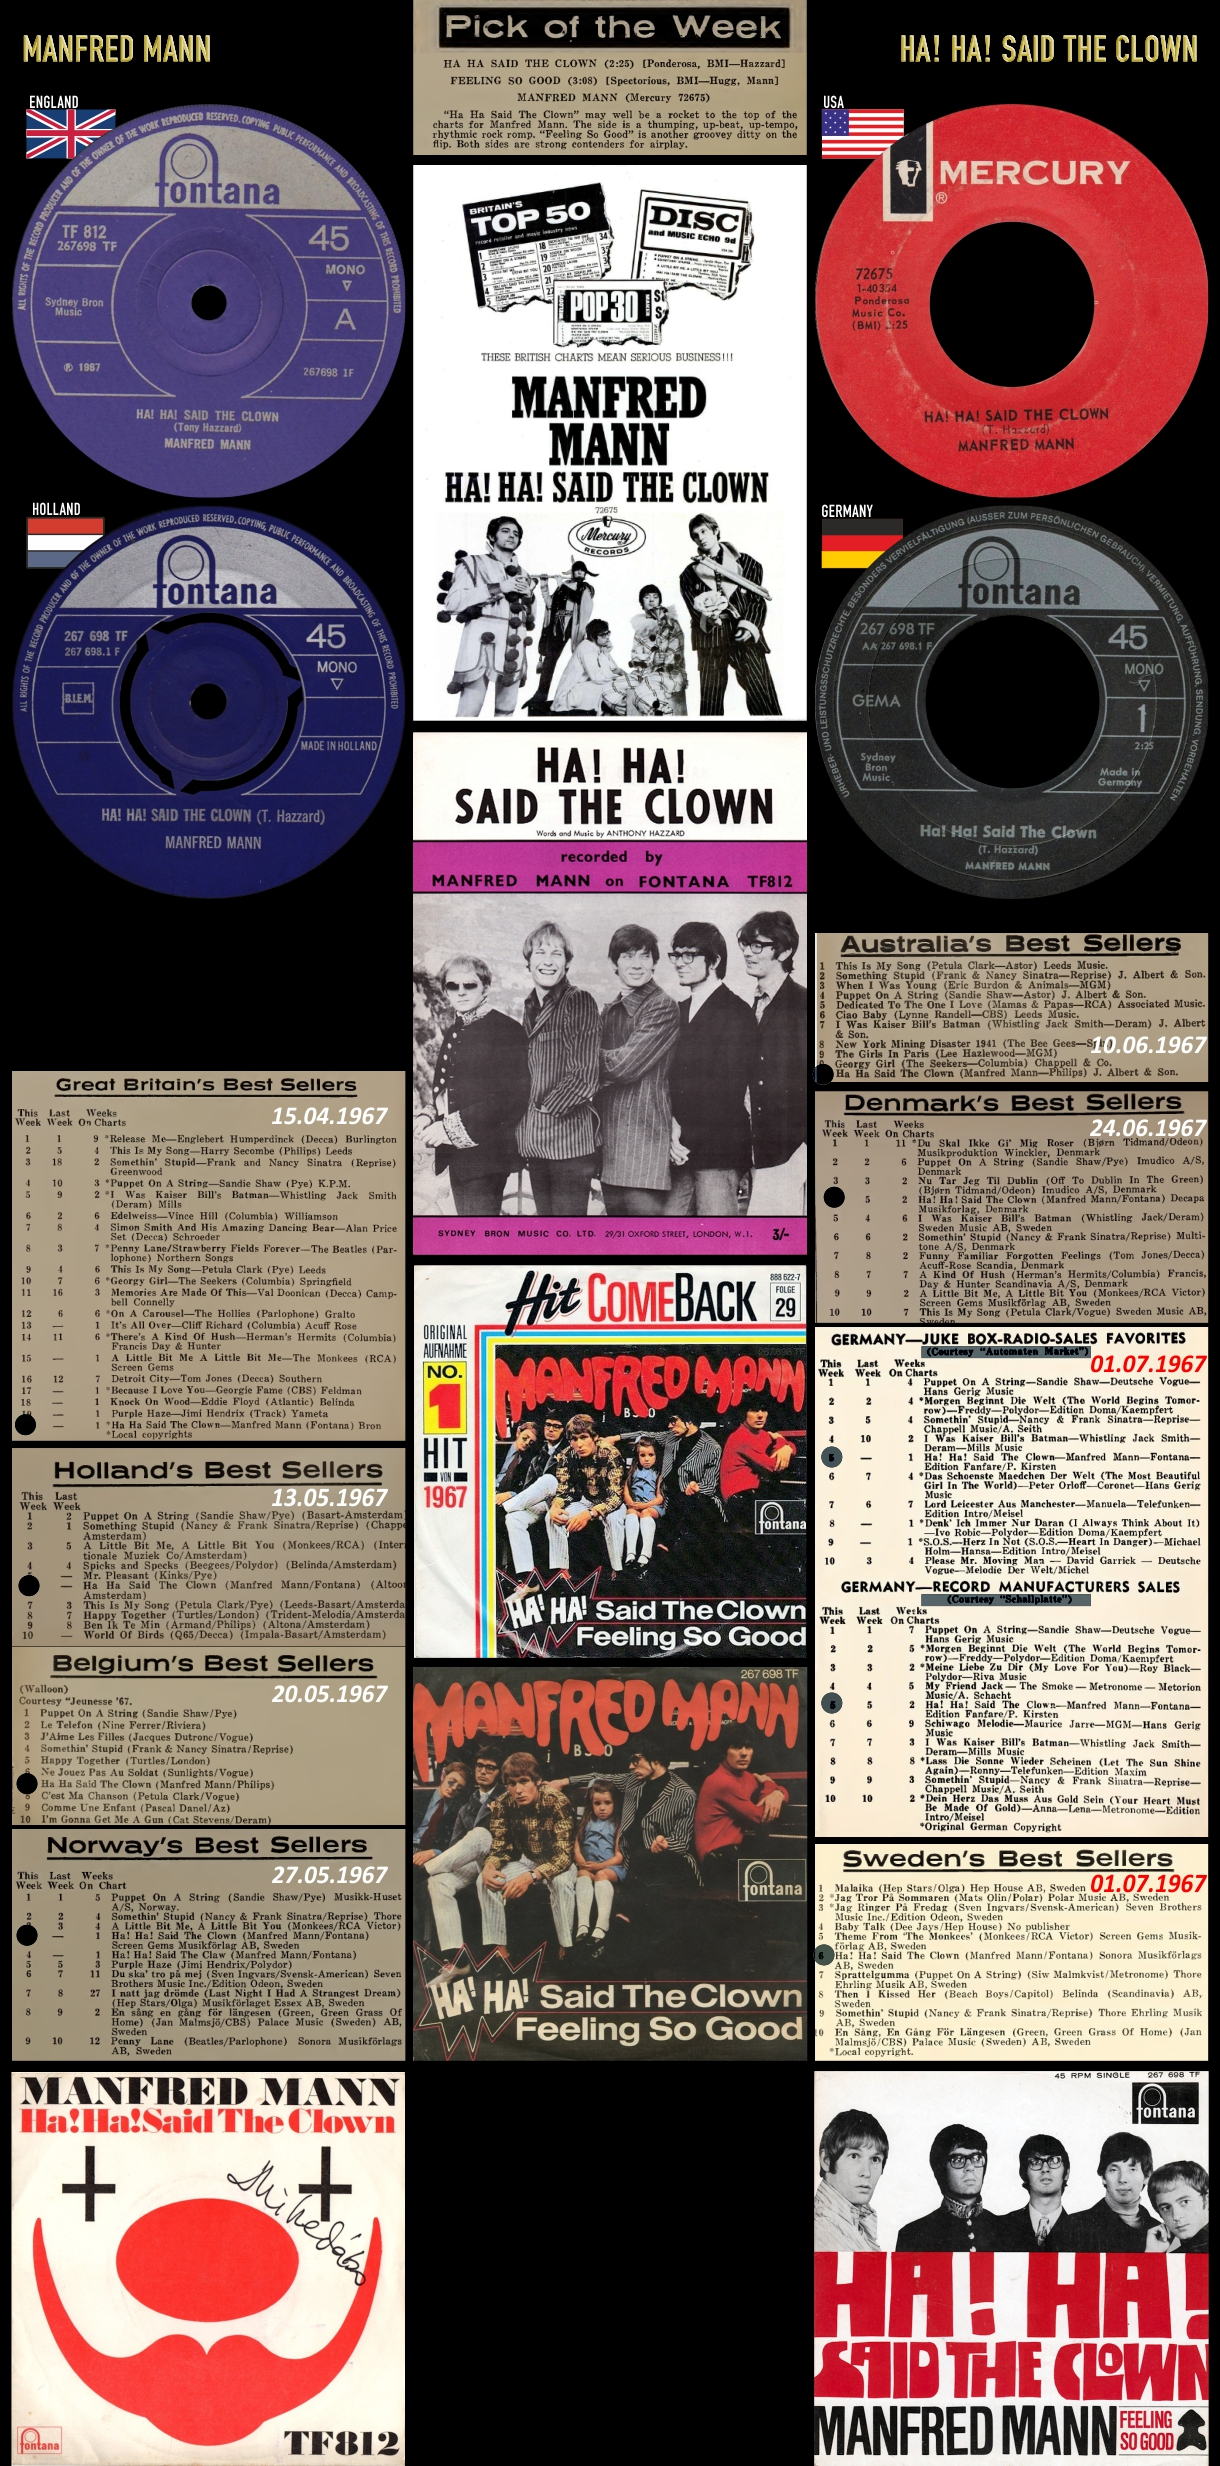 670520_Manfred Mann_Ha Ha Said The Clown